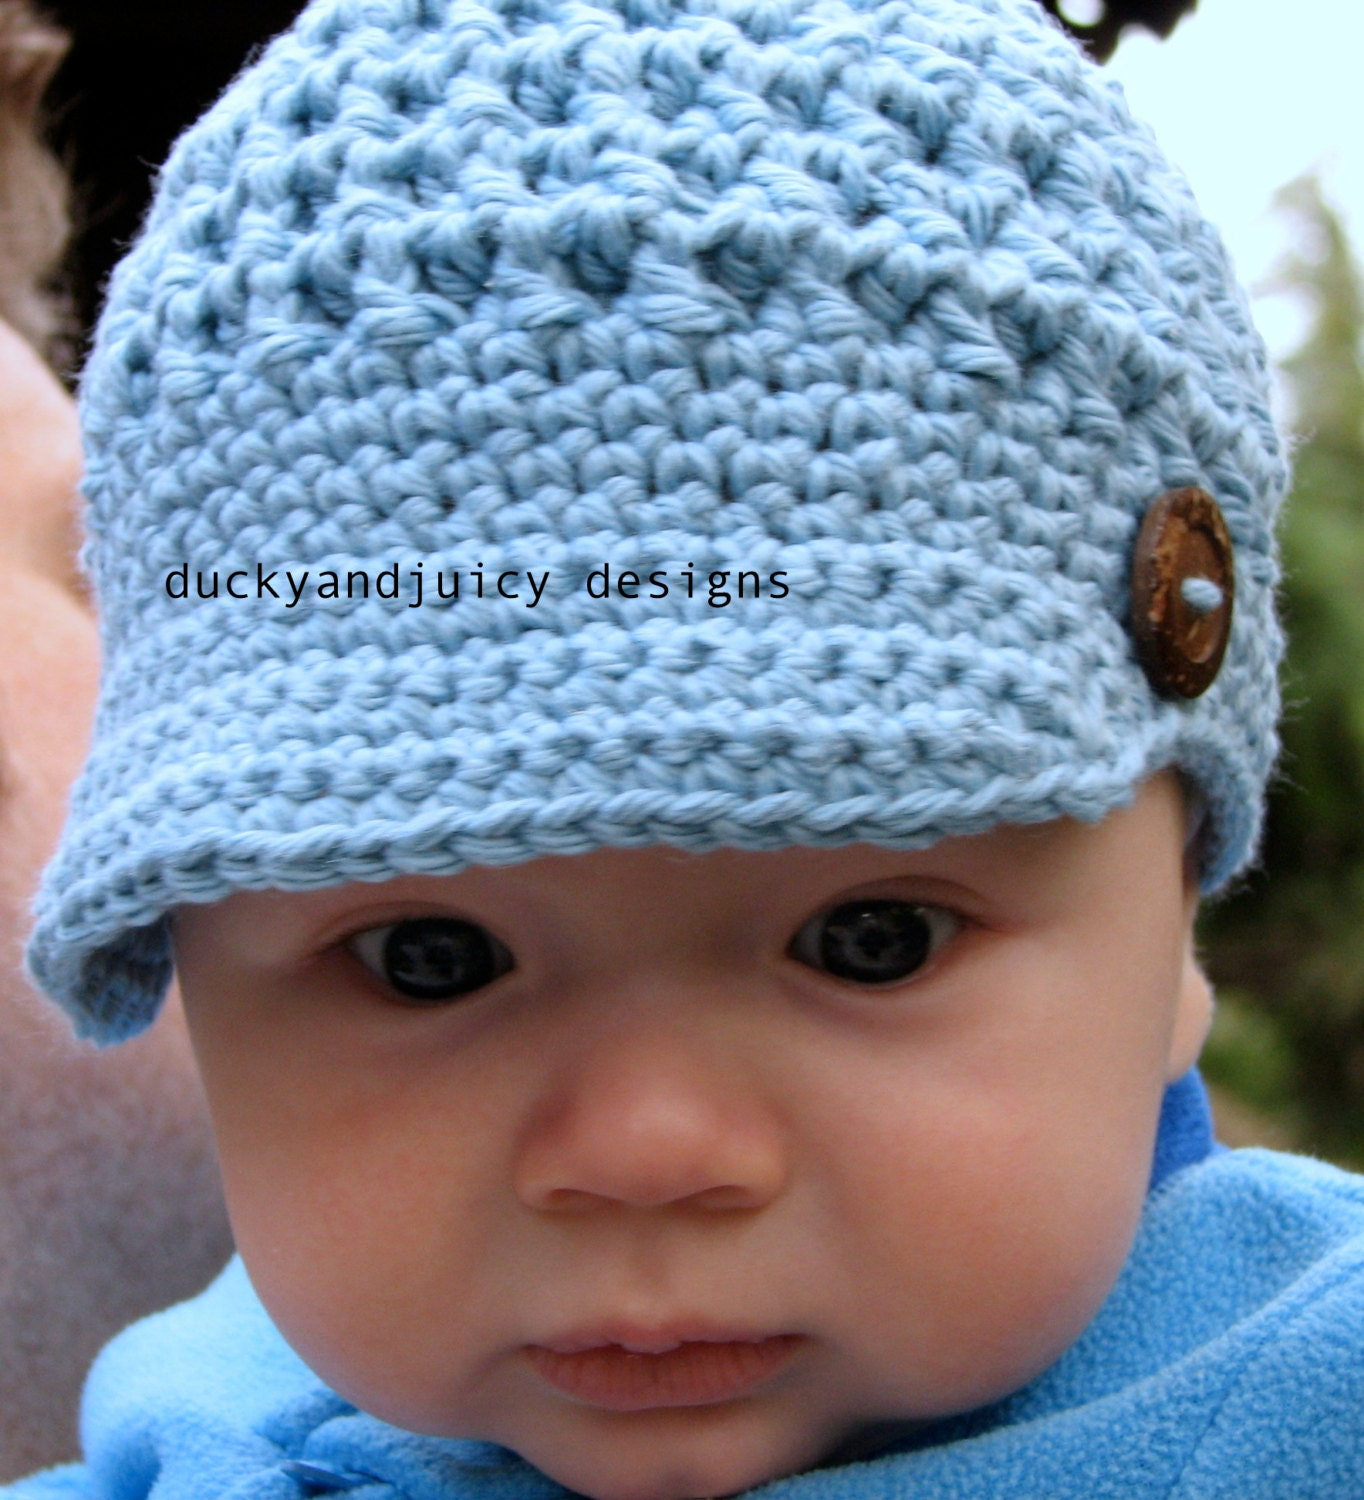 Patterns Crochet Hats For Babies : Baby Crochet Hat Baby Boy Hat Baby Girl Hat by ducklyandjuicy